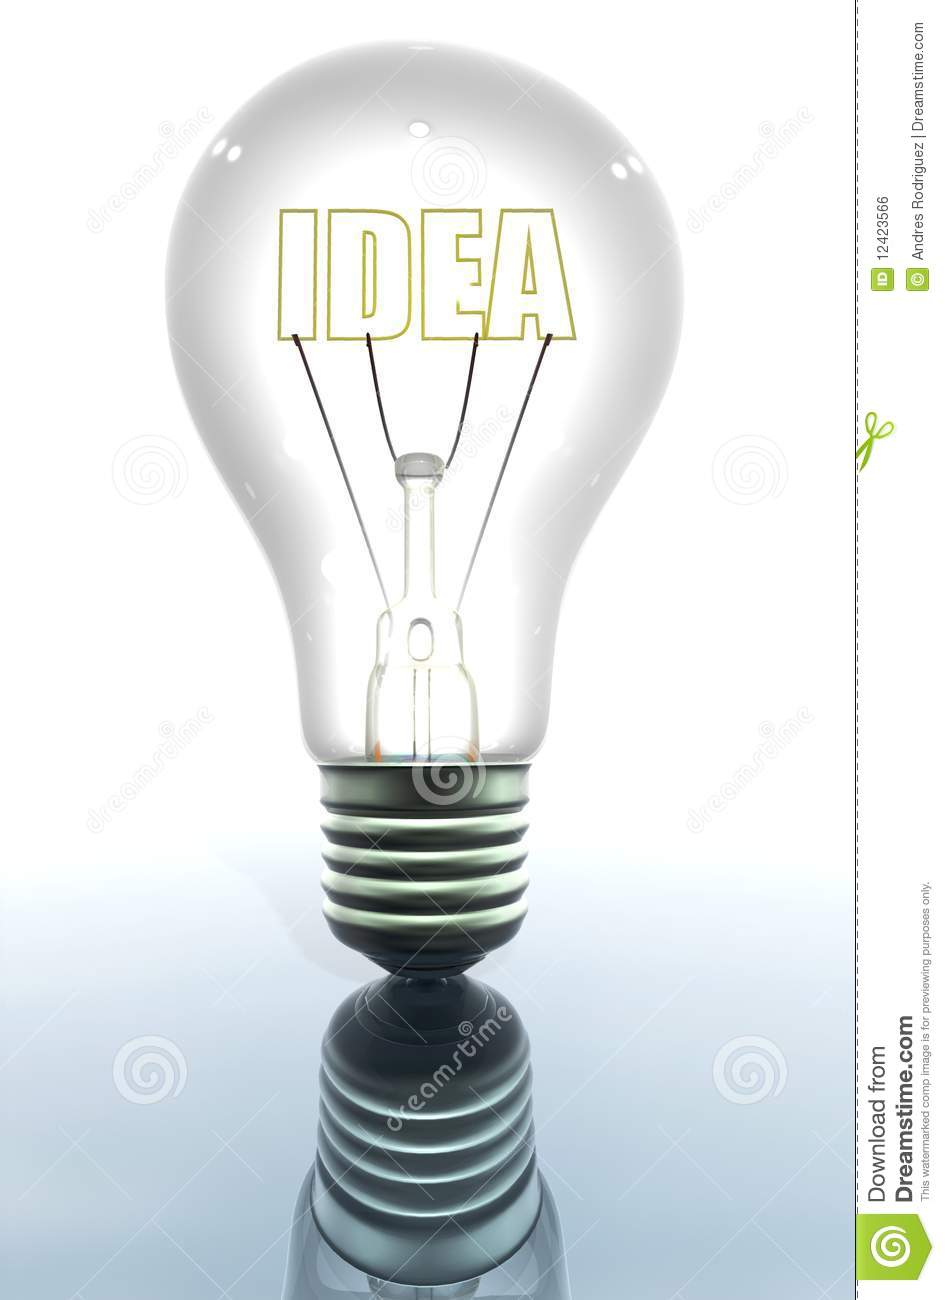 Light bulb showing an idea stock photo Image of